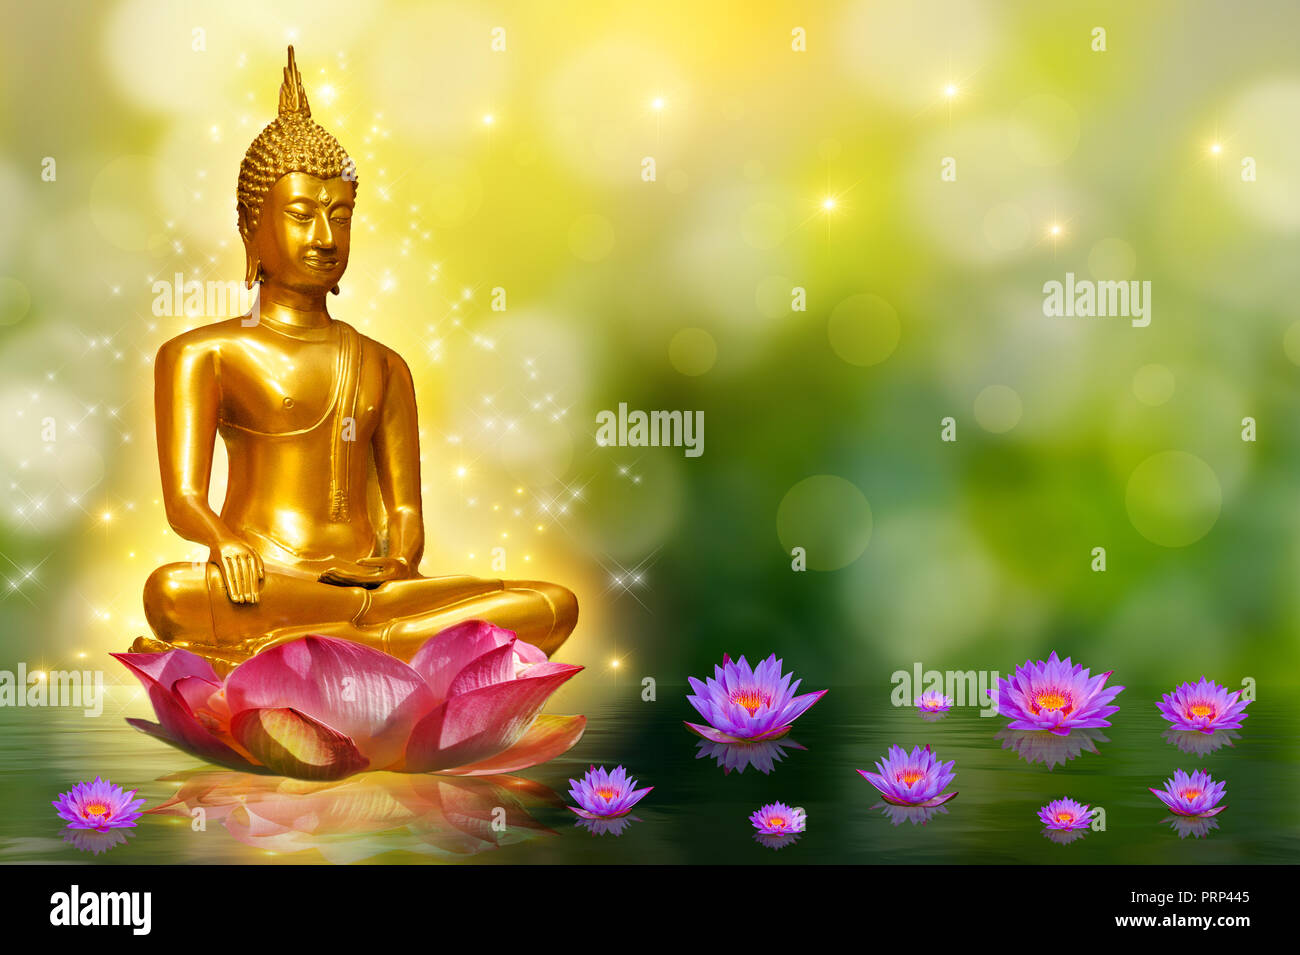 Buddha statue water lotus buddha standing on lotus flower on orange buddha statue water lotus buddha standing on lotus flower on orange background izmirmasajfo